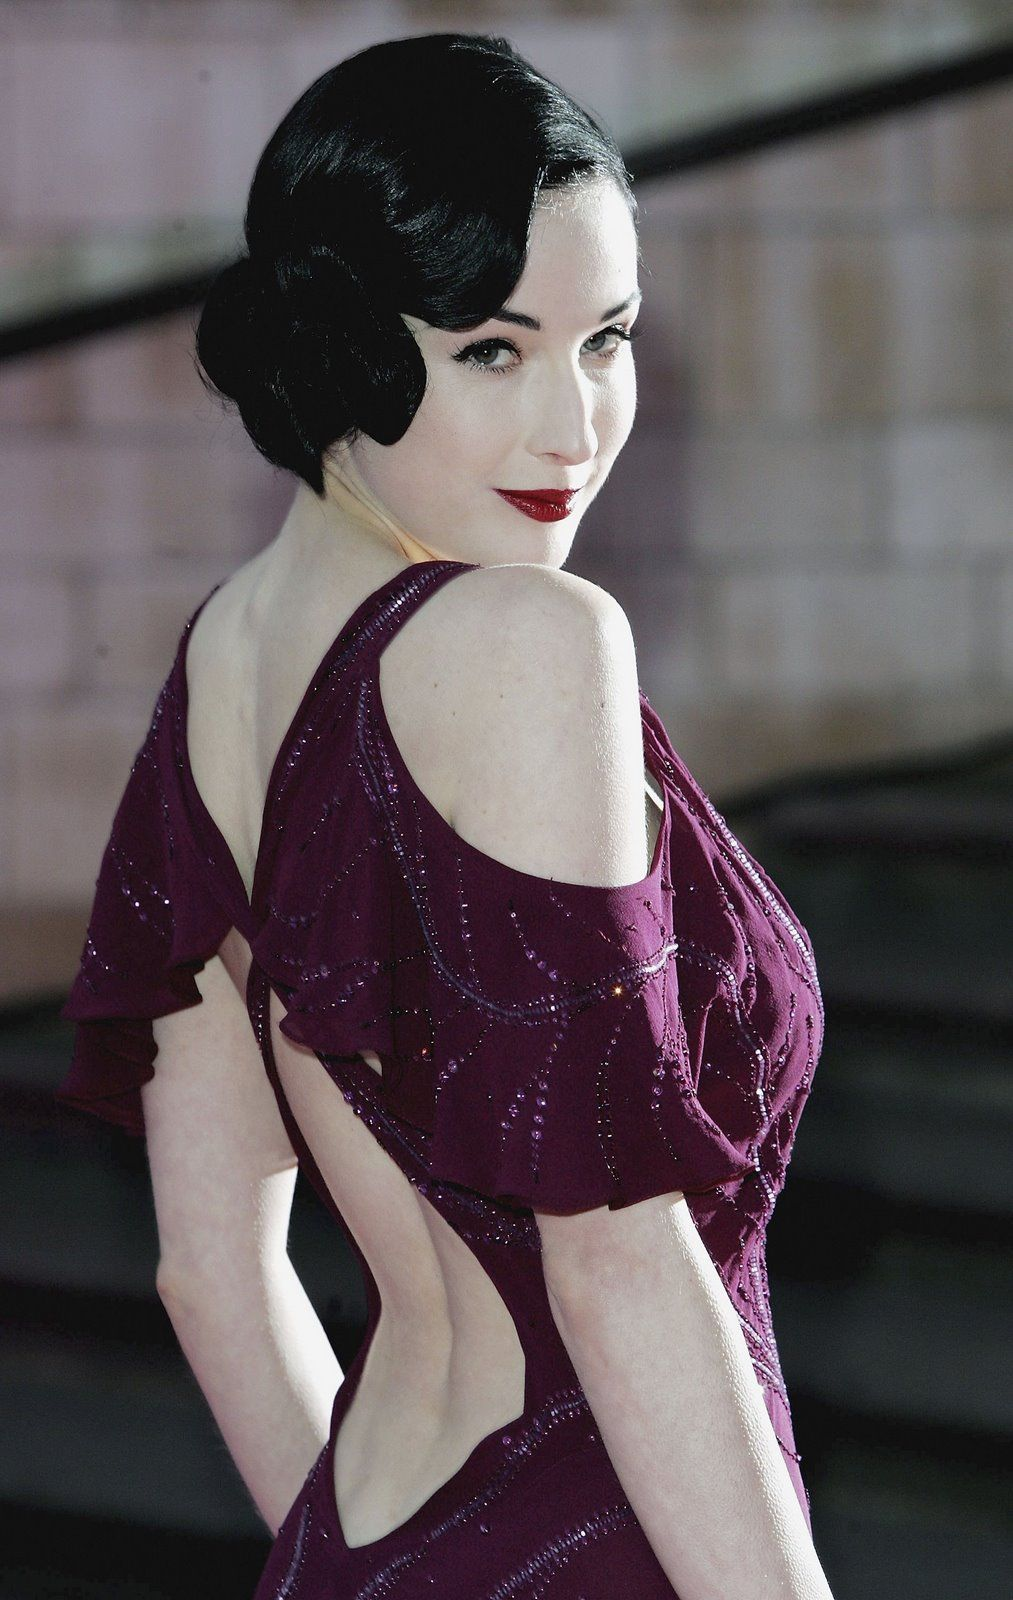 c3246662ff3a Enchanted By Dita - HQ photos of burlesque star and style icon